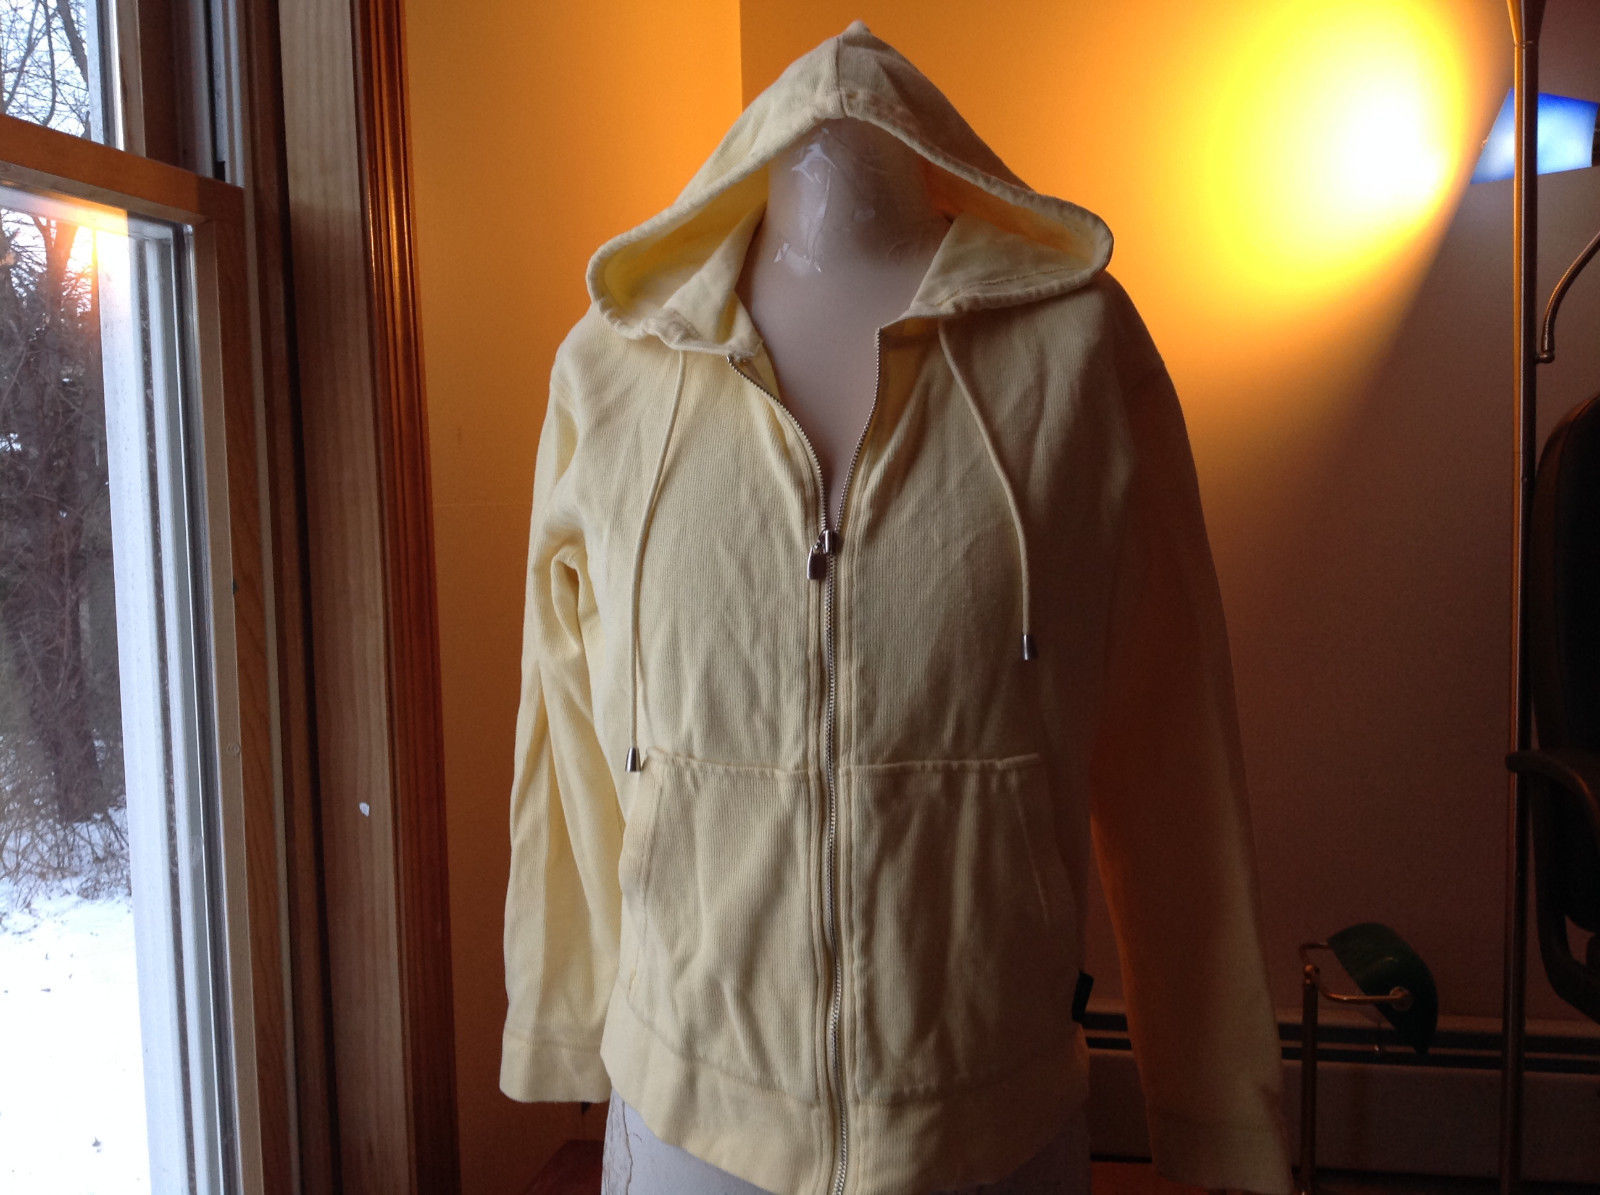 Crazy Horse Liz Claiborne Yellow Zip Up Long Sleeve Hooded Jacket  Size Small